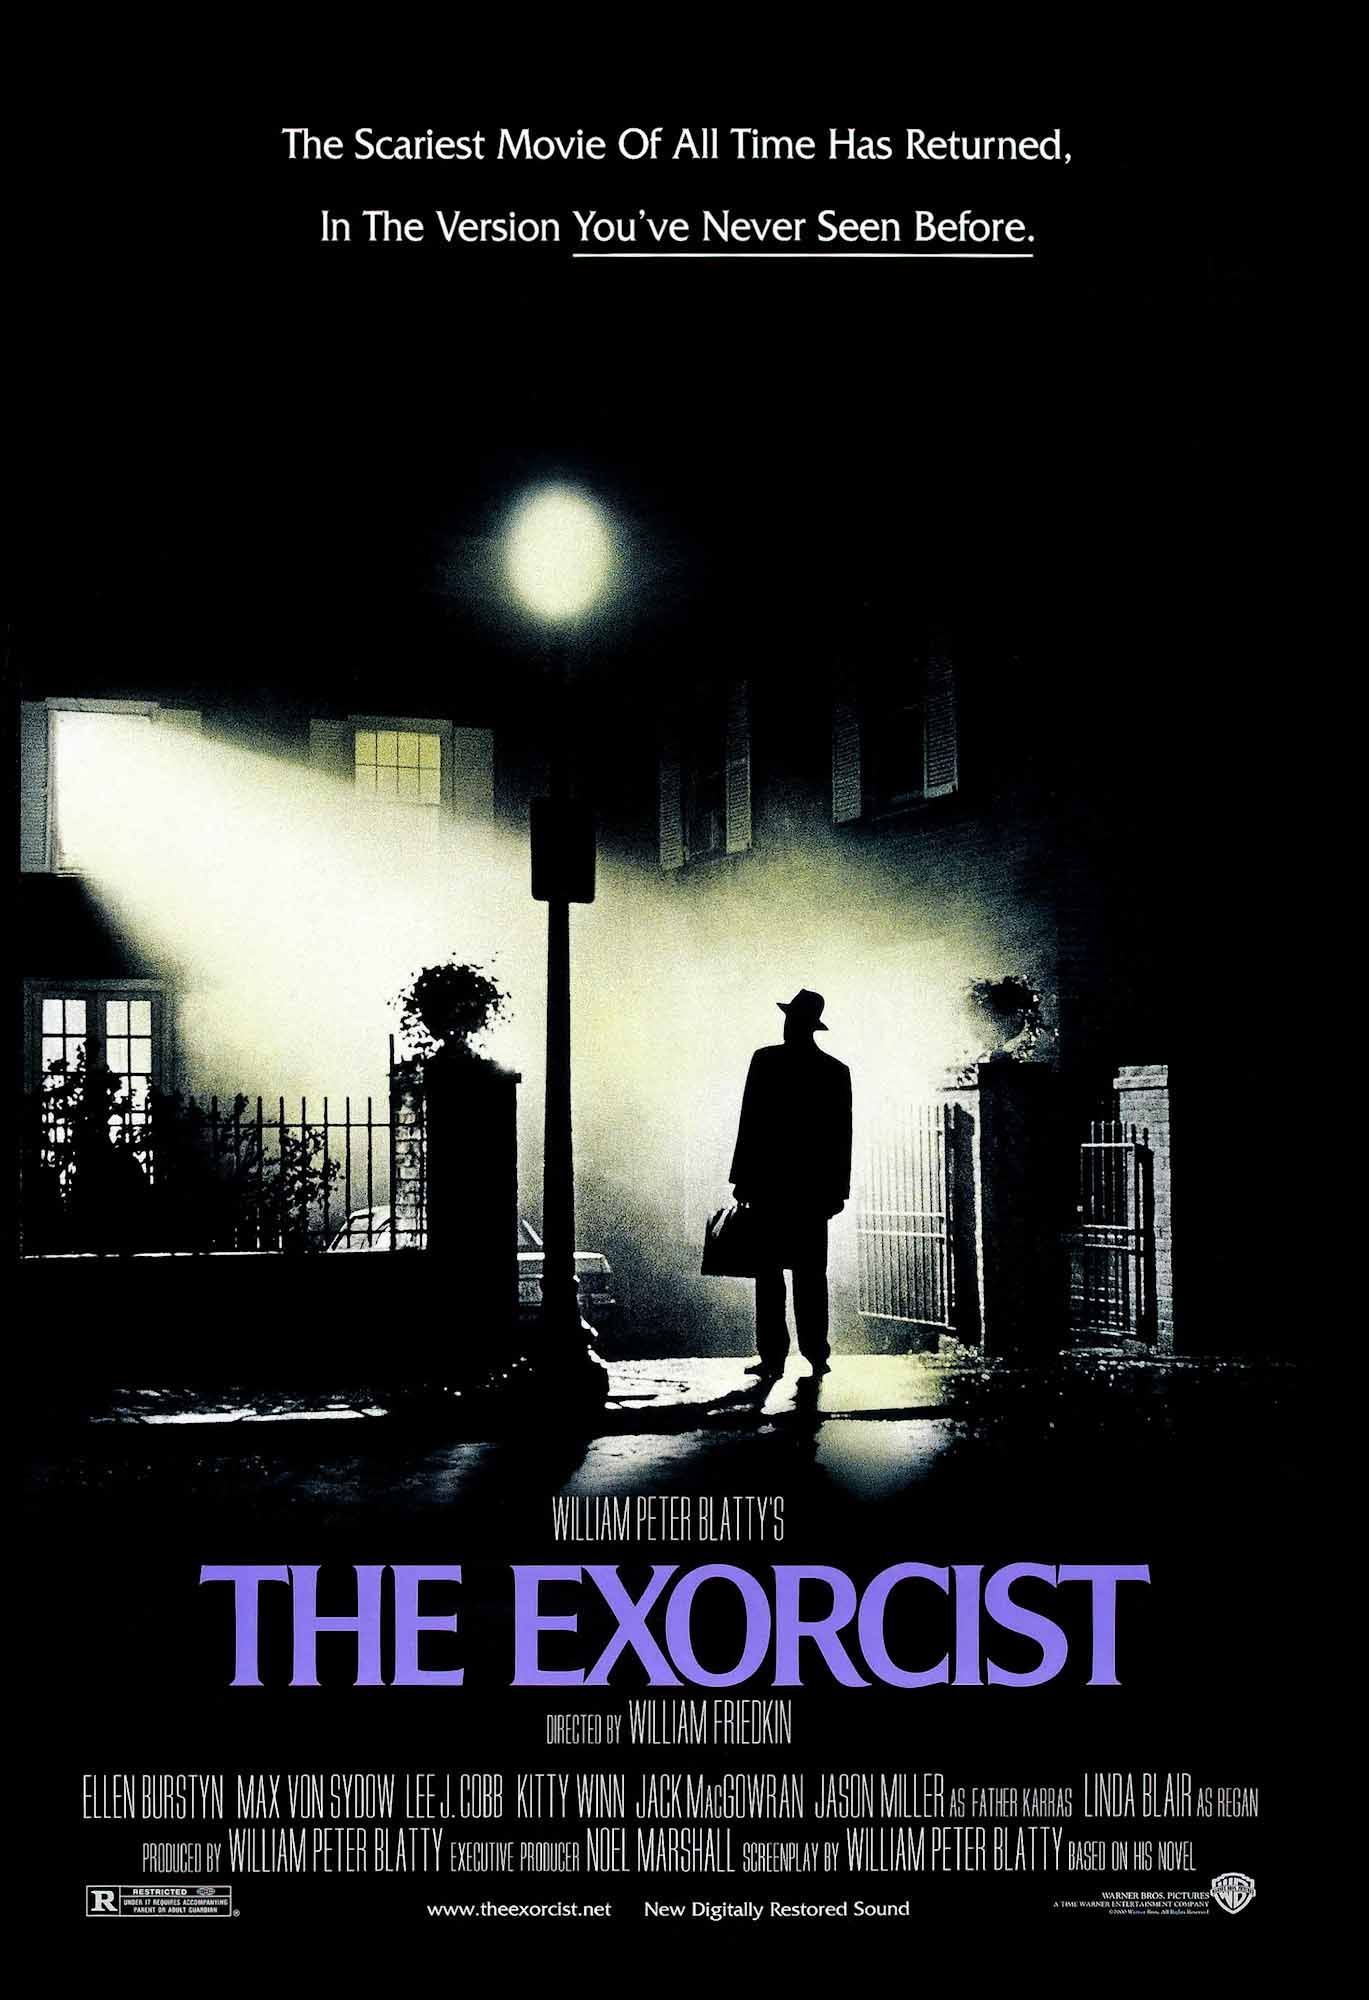 The Exorcist (1973) Horror Movie - Directed By William Friedkin -  Today's Throwback: The Exorcist (1973) Film #movie #throwback #horror: Synopsis: When a teenage g - #BeautifulCelebrities #directed #Egypt #exorcist #Film #friedkin #horror #movie #Museums #william